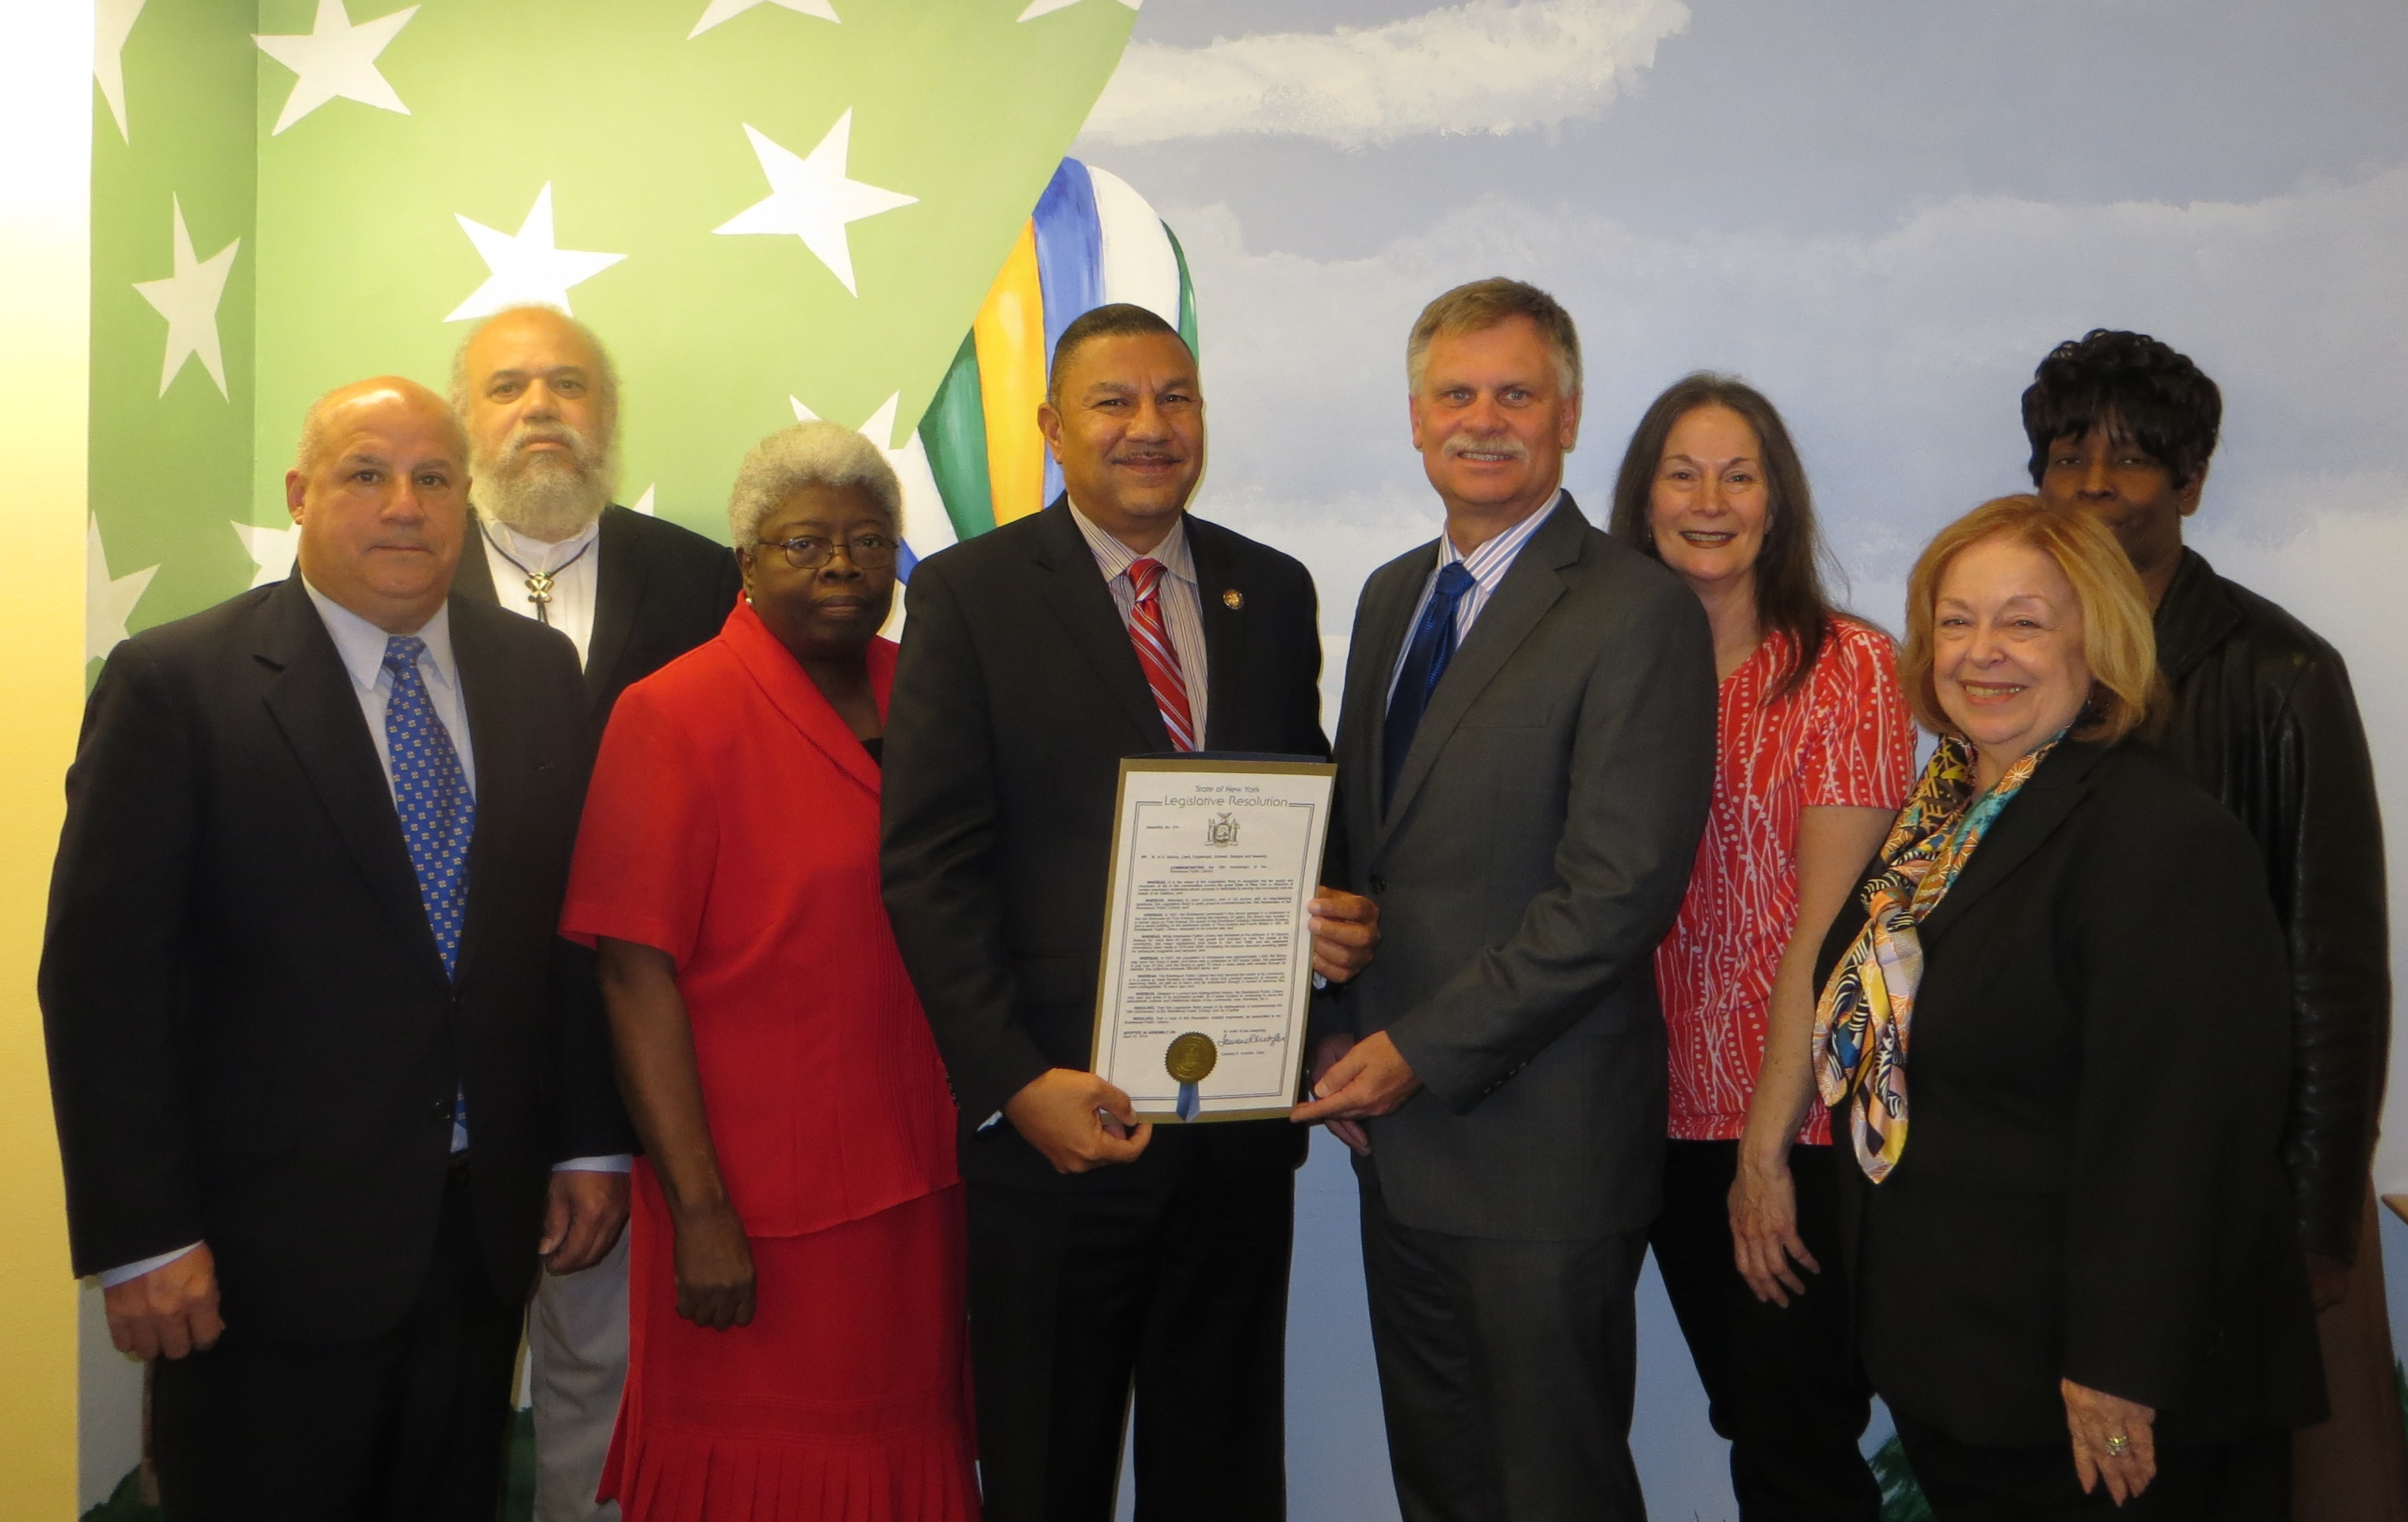 Assemblyman Phil Ramos presents a resolution to the Brentwood Public Library trustees on the commemoration of the library's 76th anniversary.